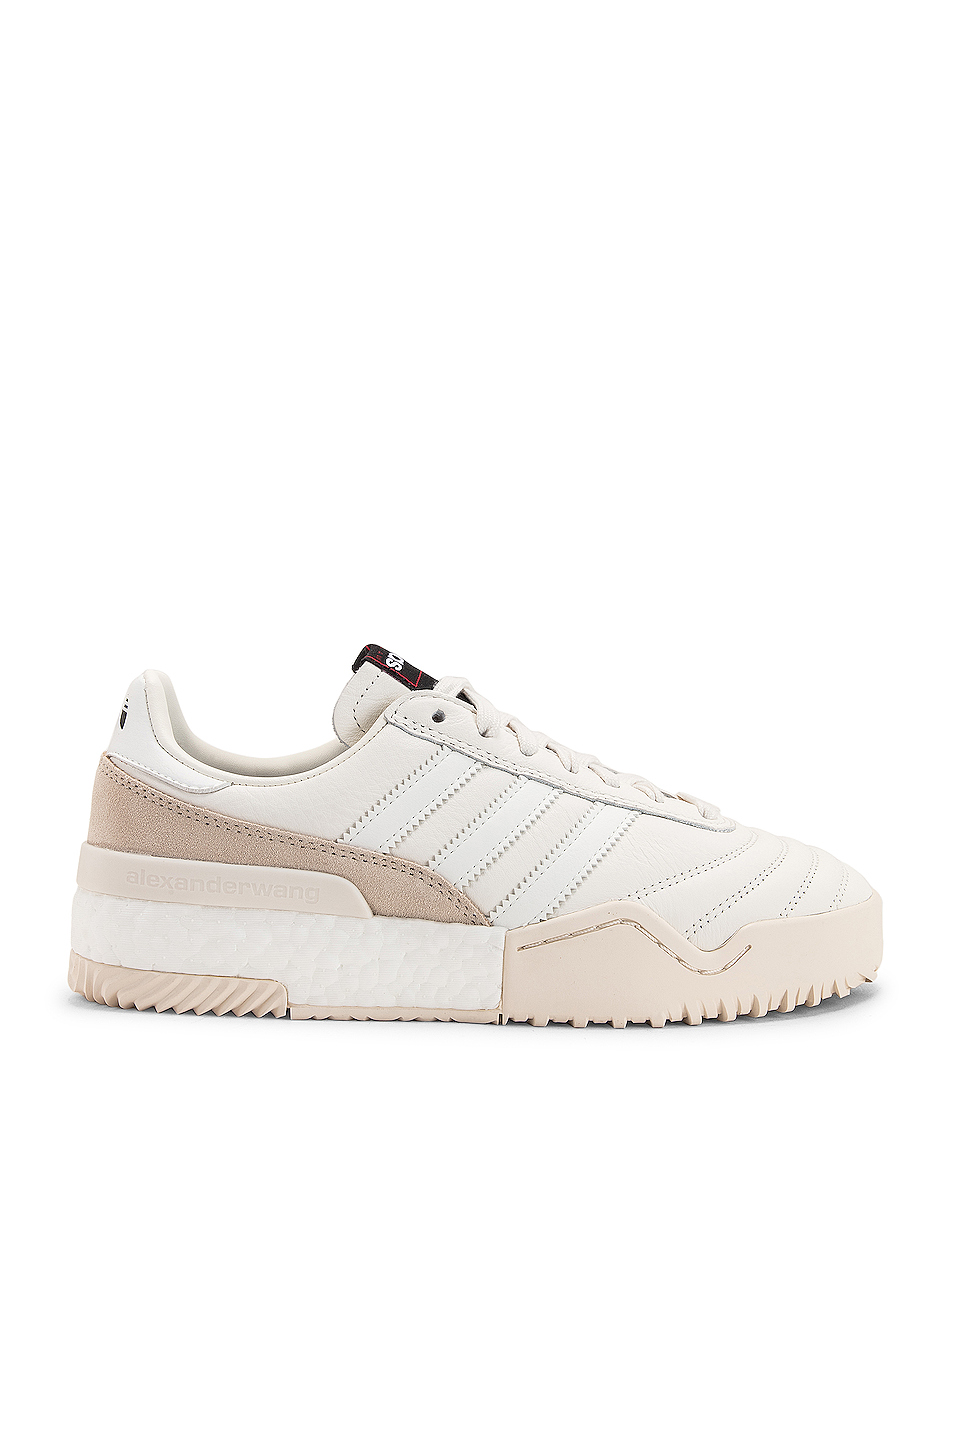 Alexander Shoes Wang By Original OnlineBobobobo Buy Adidas Women 0ymNPnwv8O